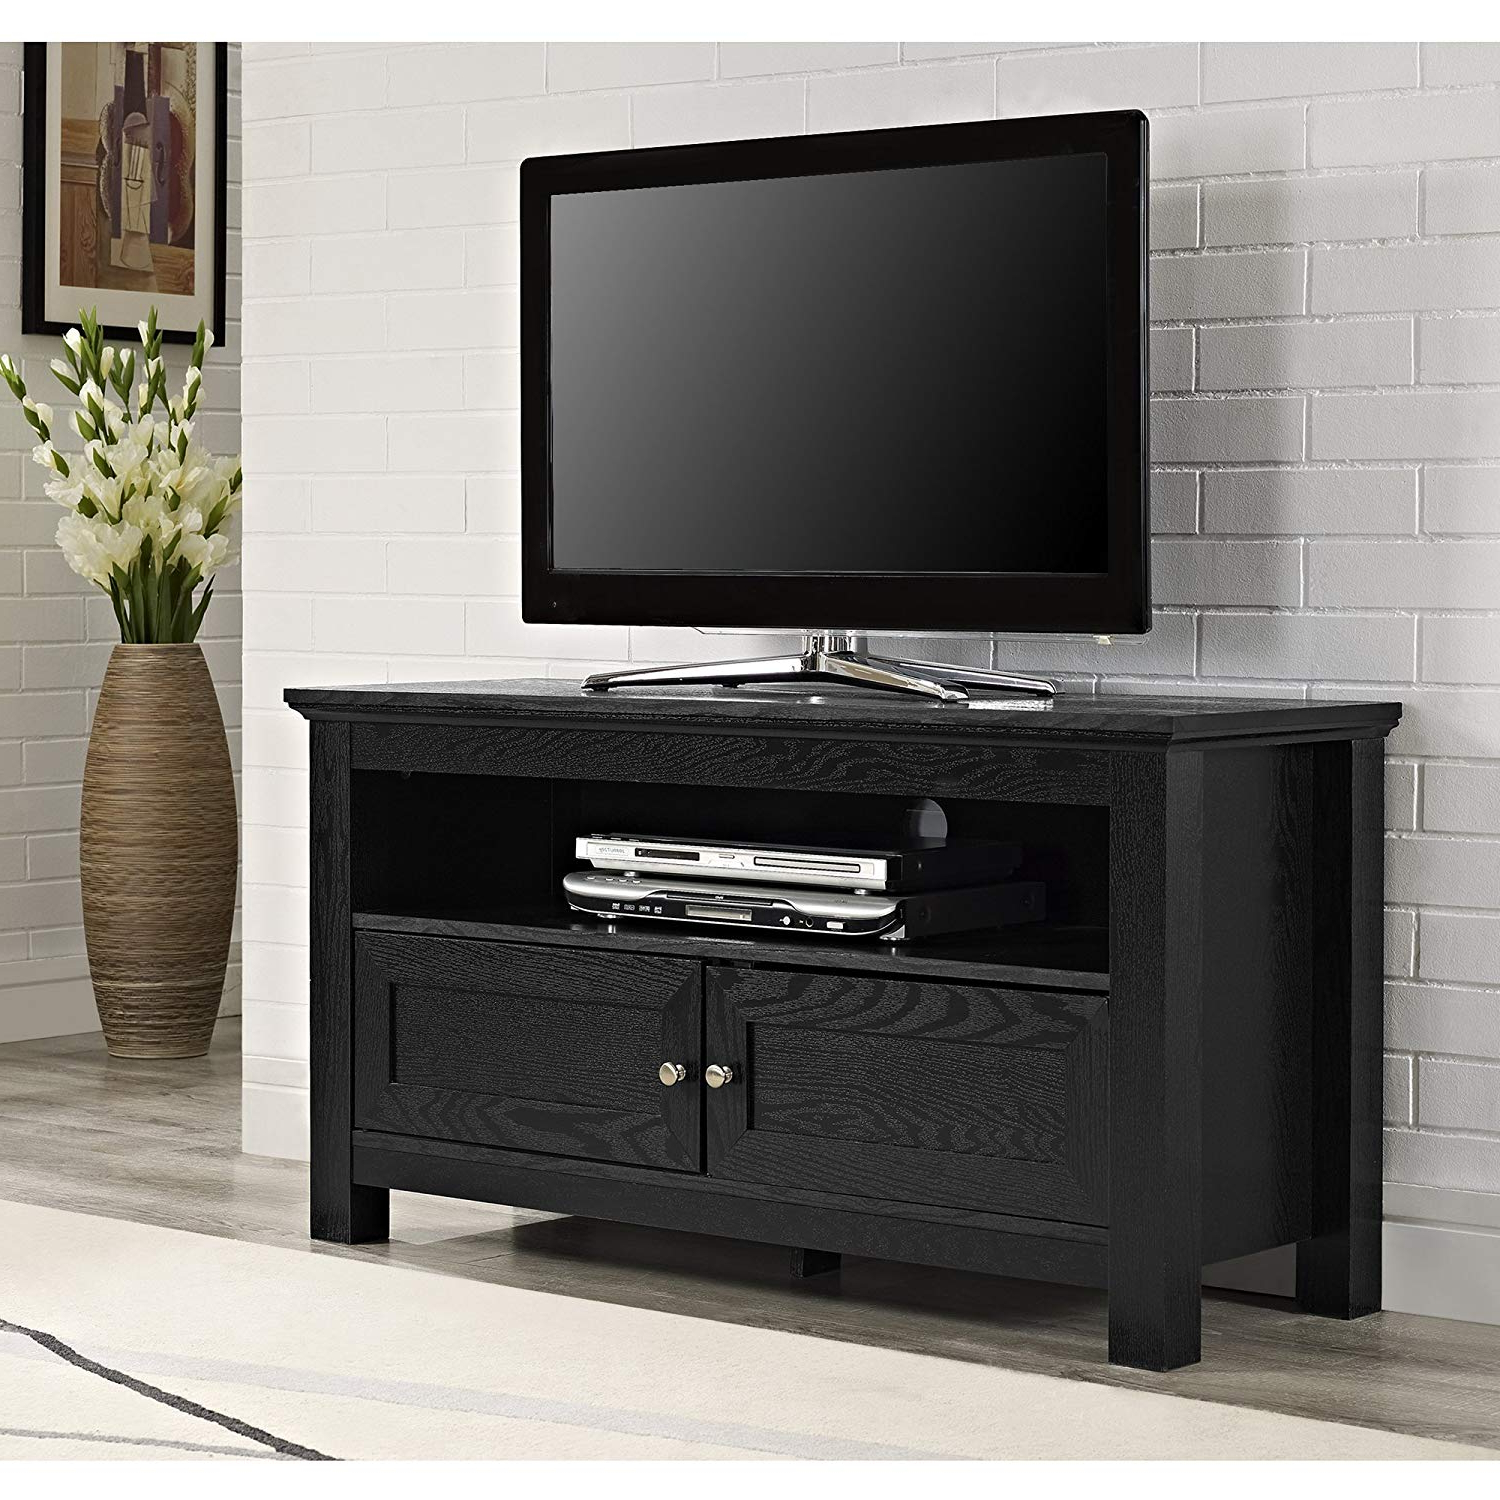 Amazon: Walker Edison 44 Inches Cortez Tv Stand Console, Black Within Most Current Black Tv Cabinets With Drawers (View 2 of 20)